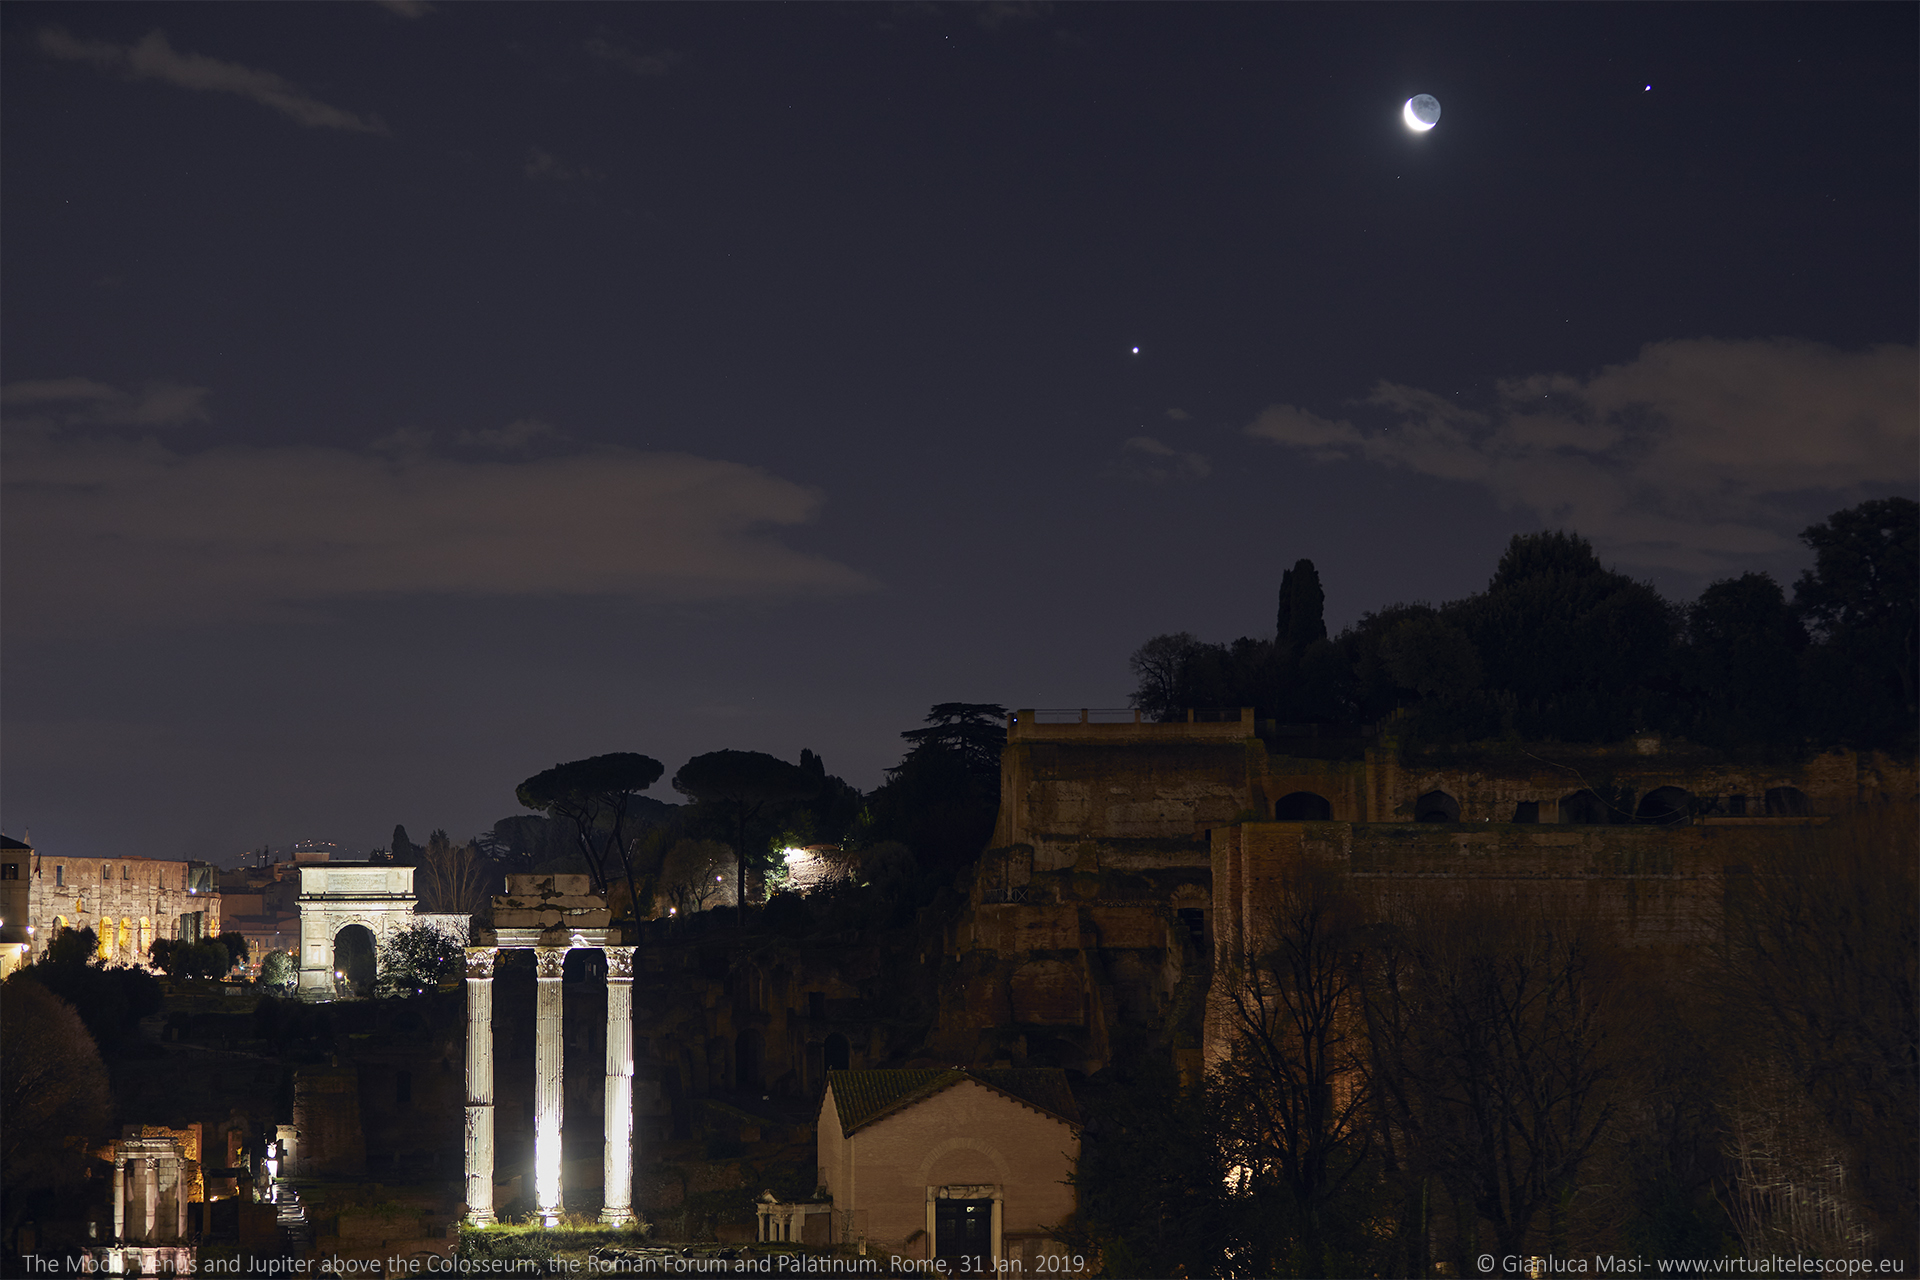 The Moon, Venus and Jupiter shine above the Colosseum, the Roman Forum and the Palatine Hill - 31 Jan. 2019